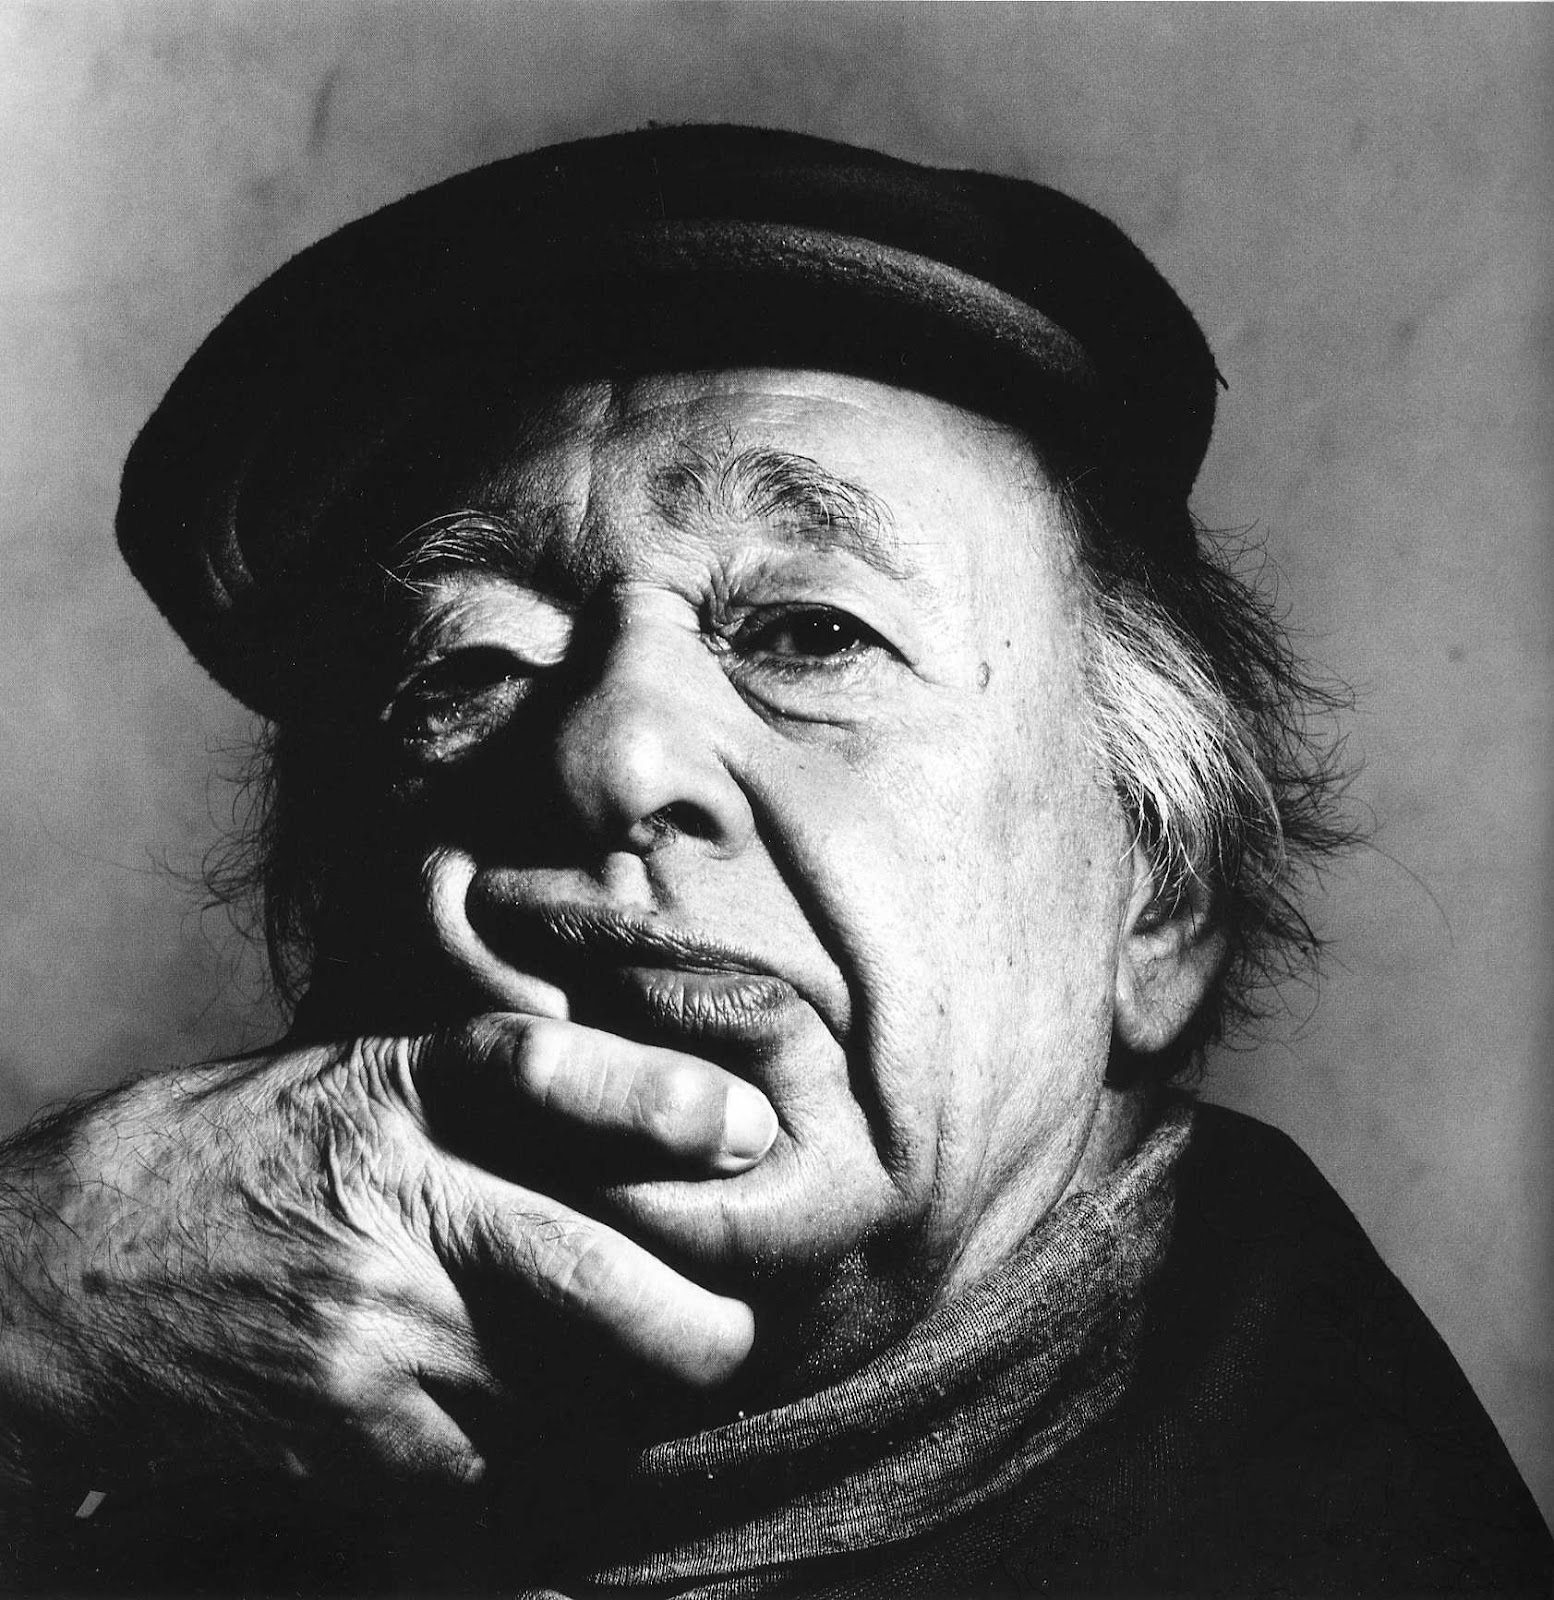 irving penn Irving penn 64k likes a good photograph is one that communicates a fact,  touches the heart and leaves the viewer a changed person for having seen it.